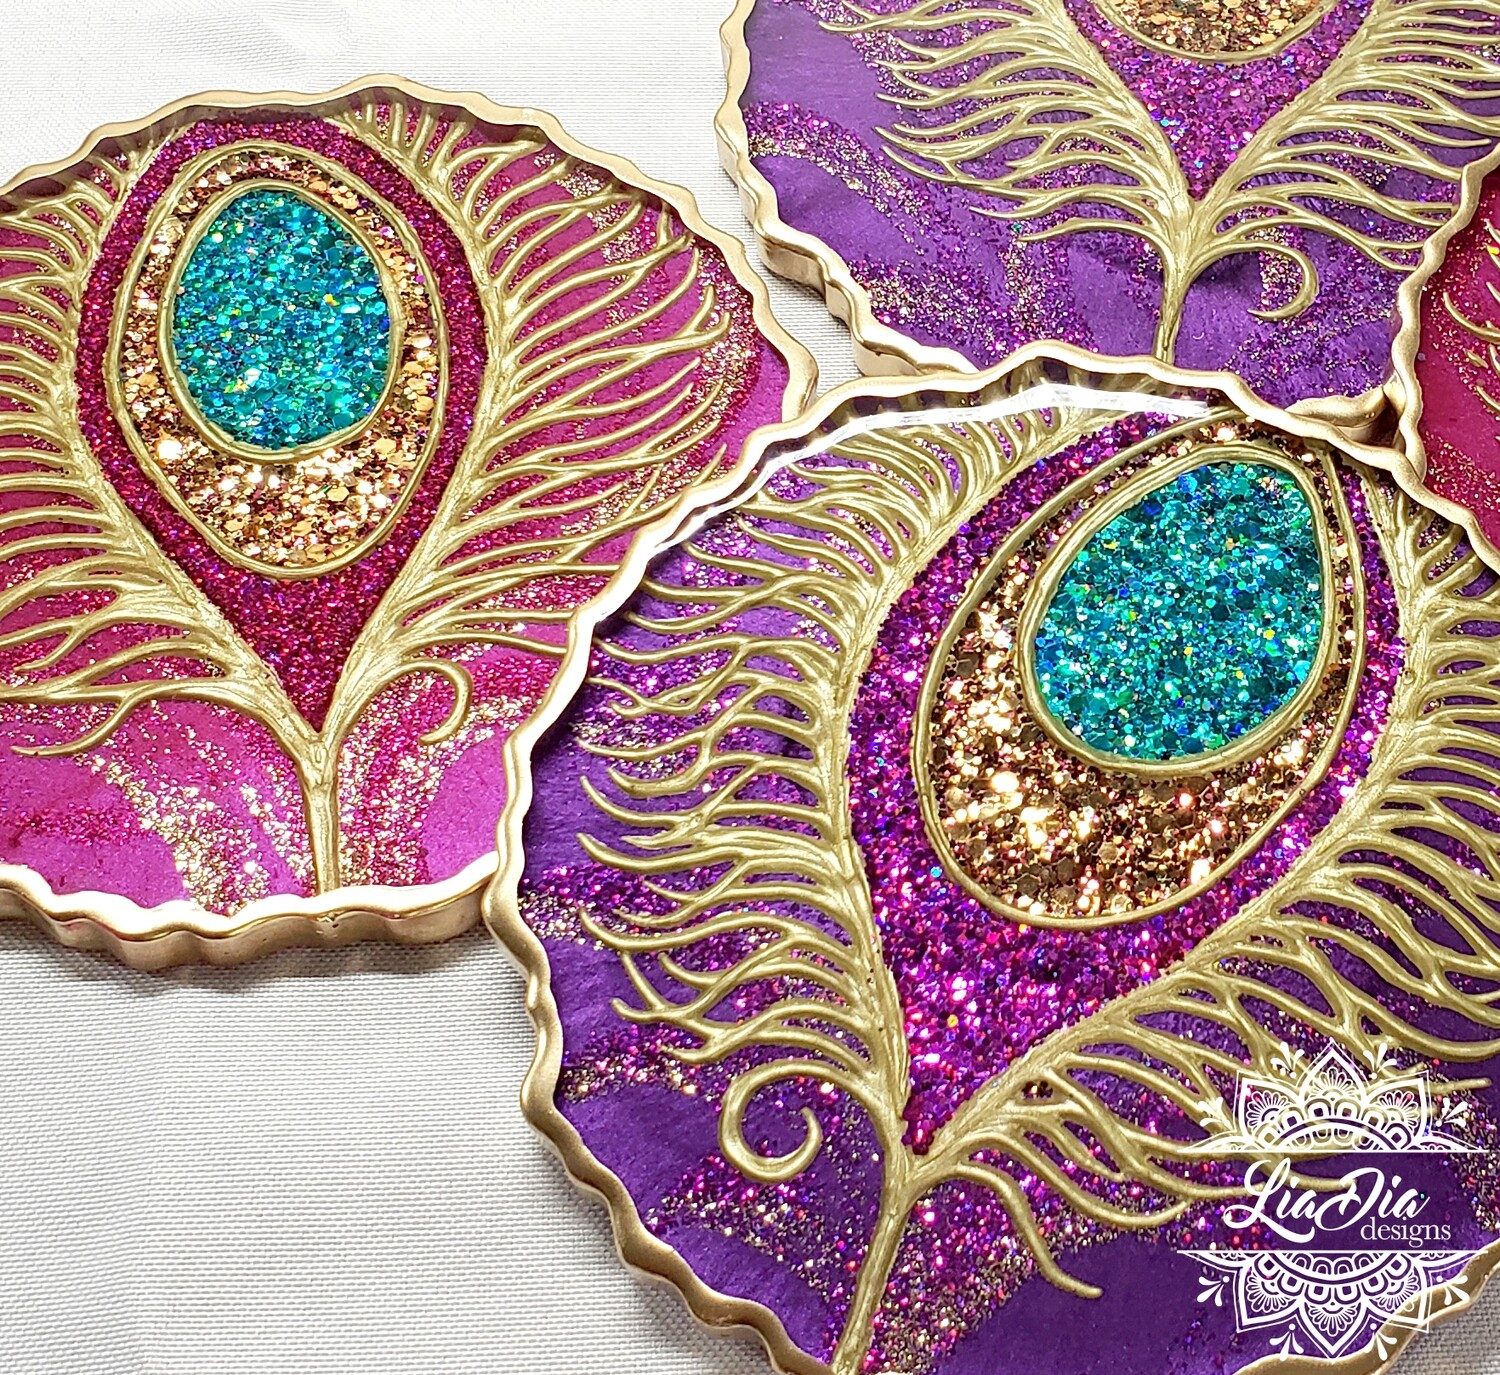 Glam Peacock Coasters - Set of 2